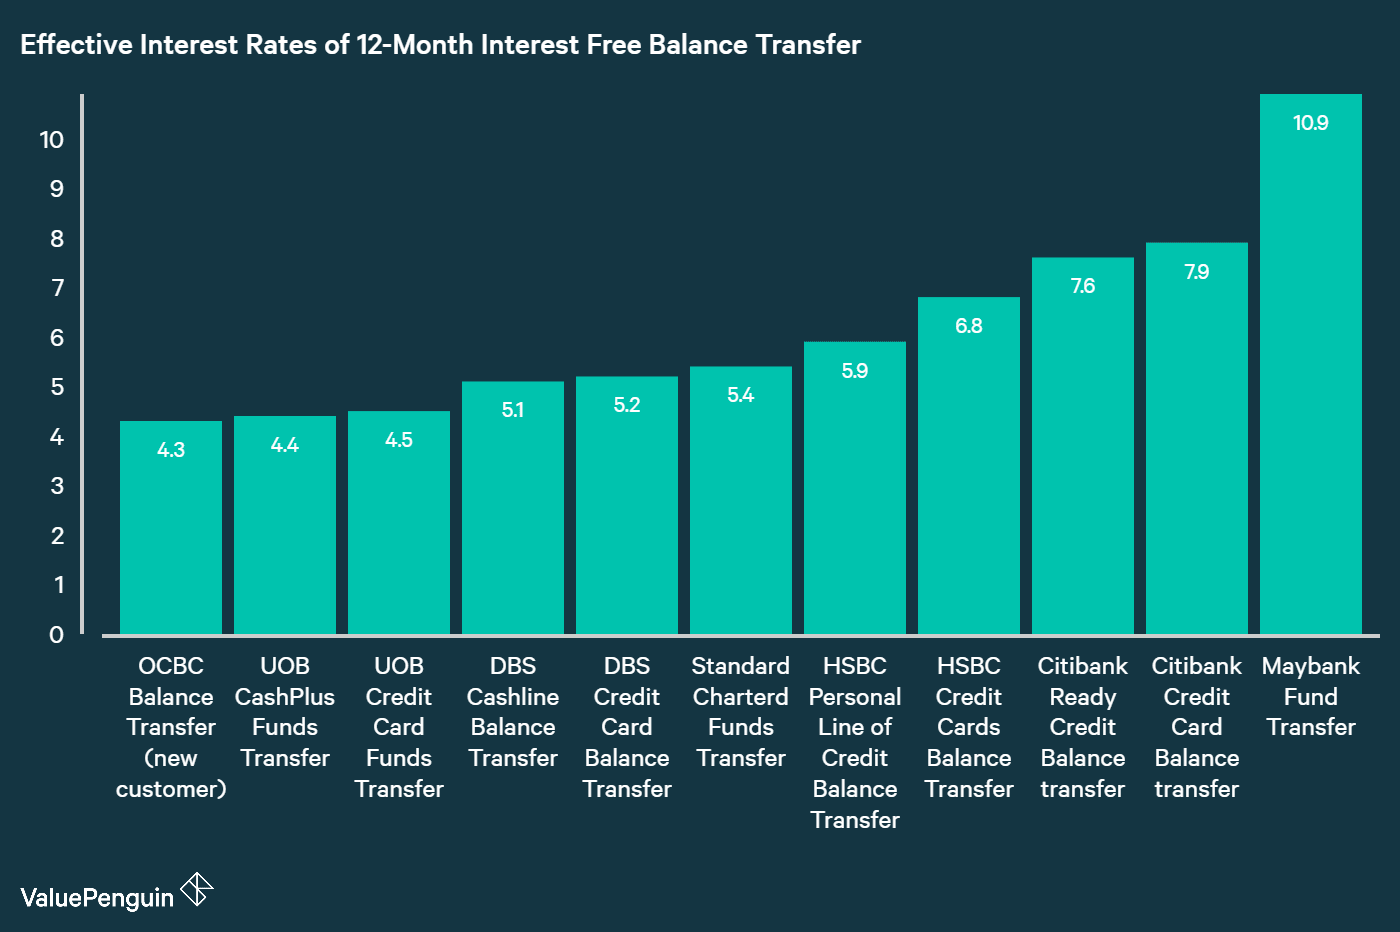 graph of effective interest rates of best balance transfers in Singapore by each bank for a 12-month interest rate free product